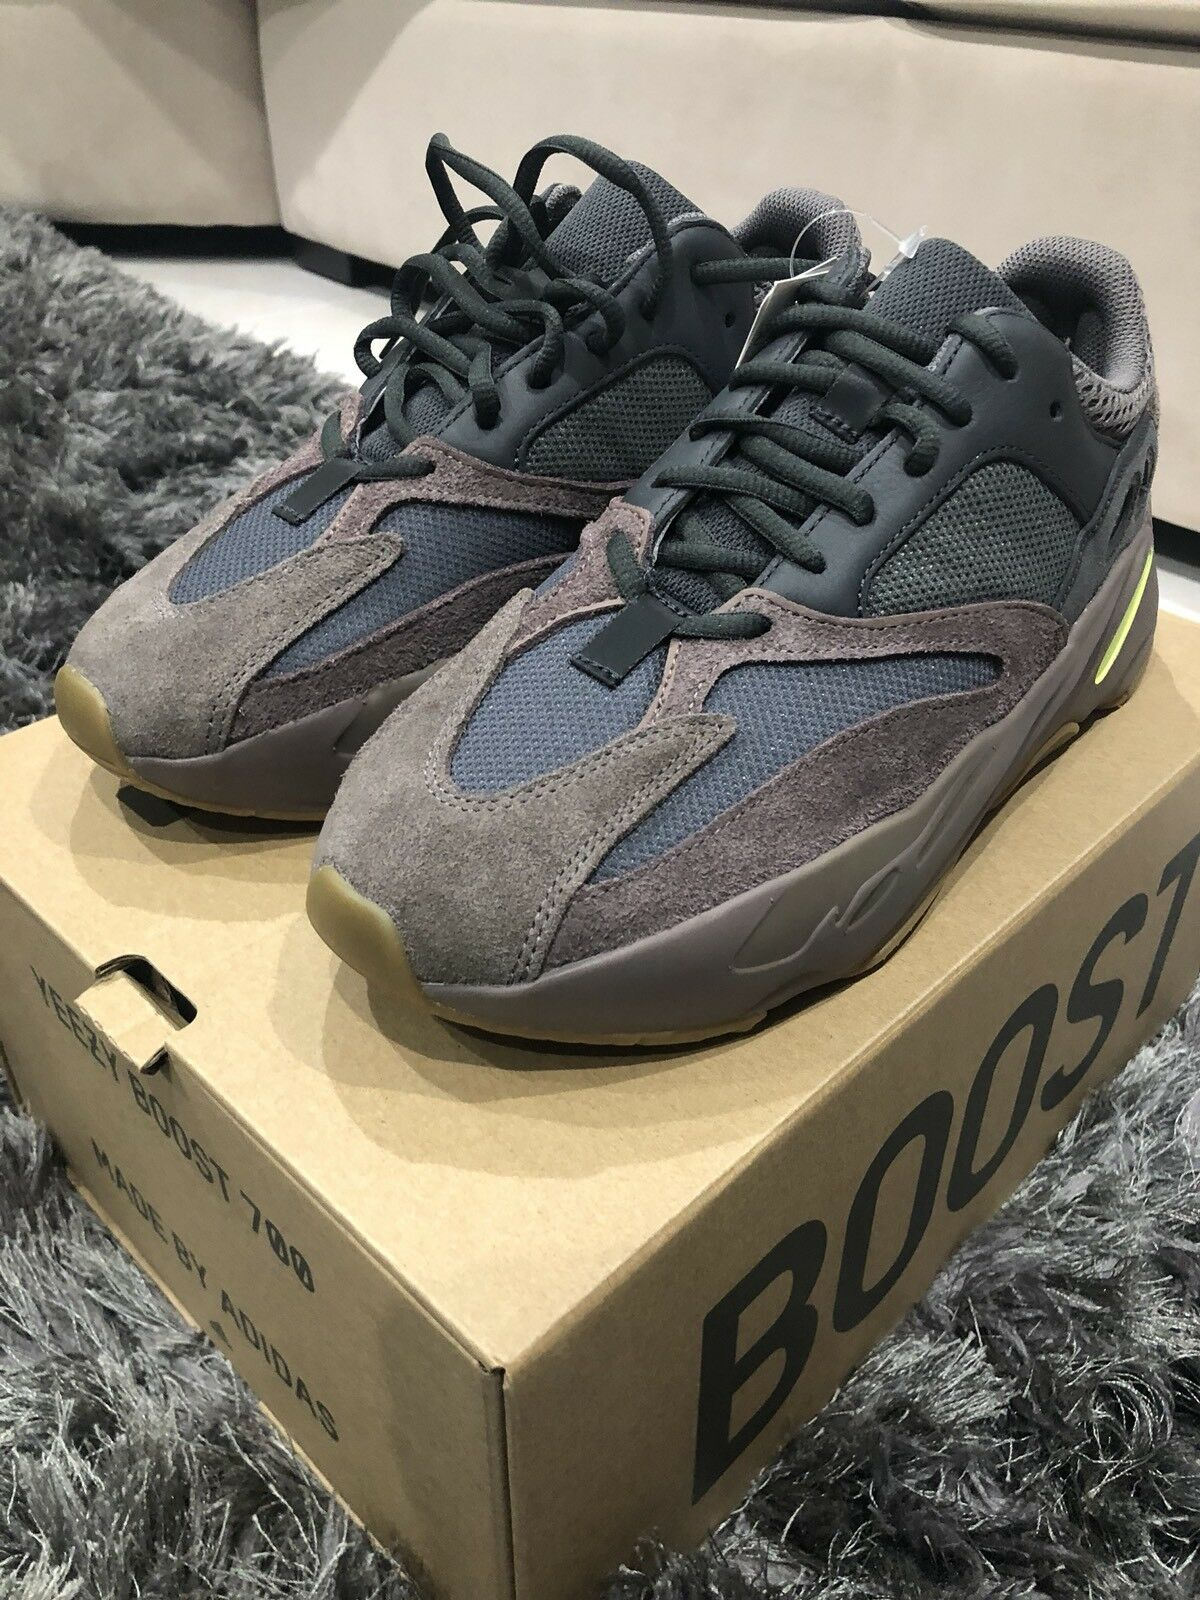 Yeezy Boost 700 Mauve Size 10 Wave Runner 100% Authentic Adidas Kanye West 2018